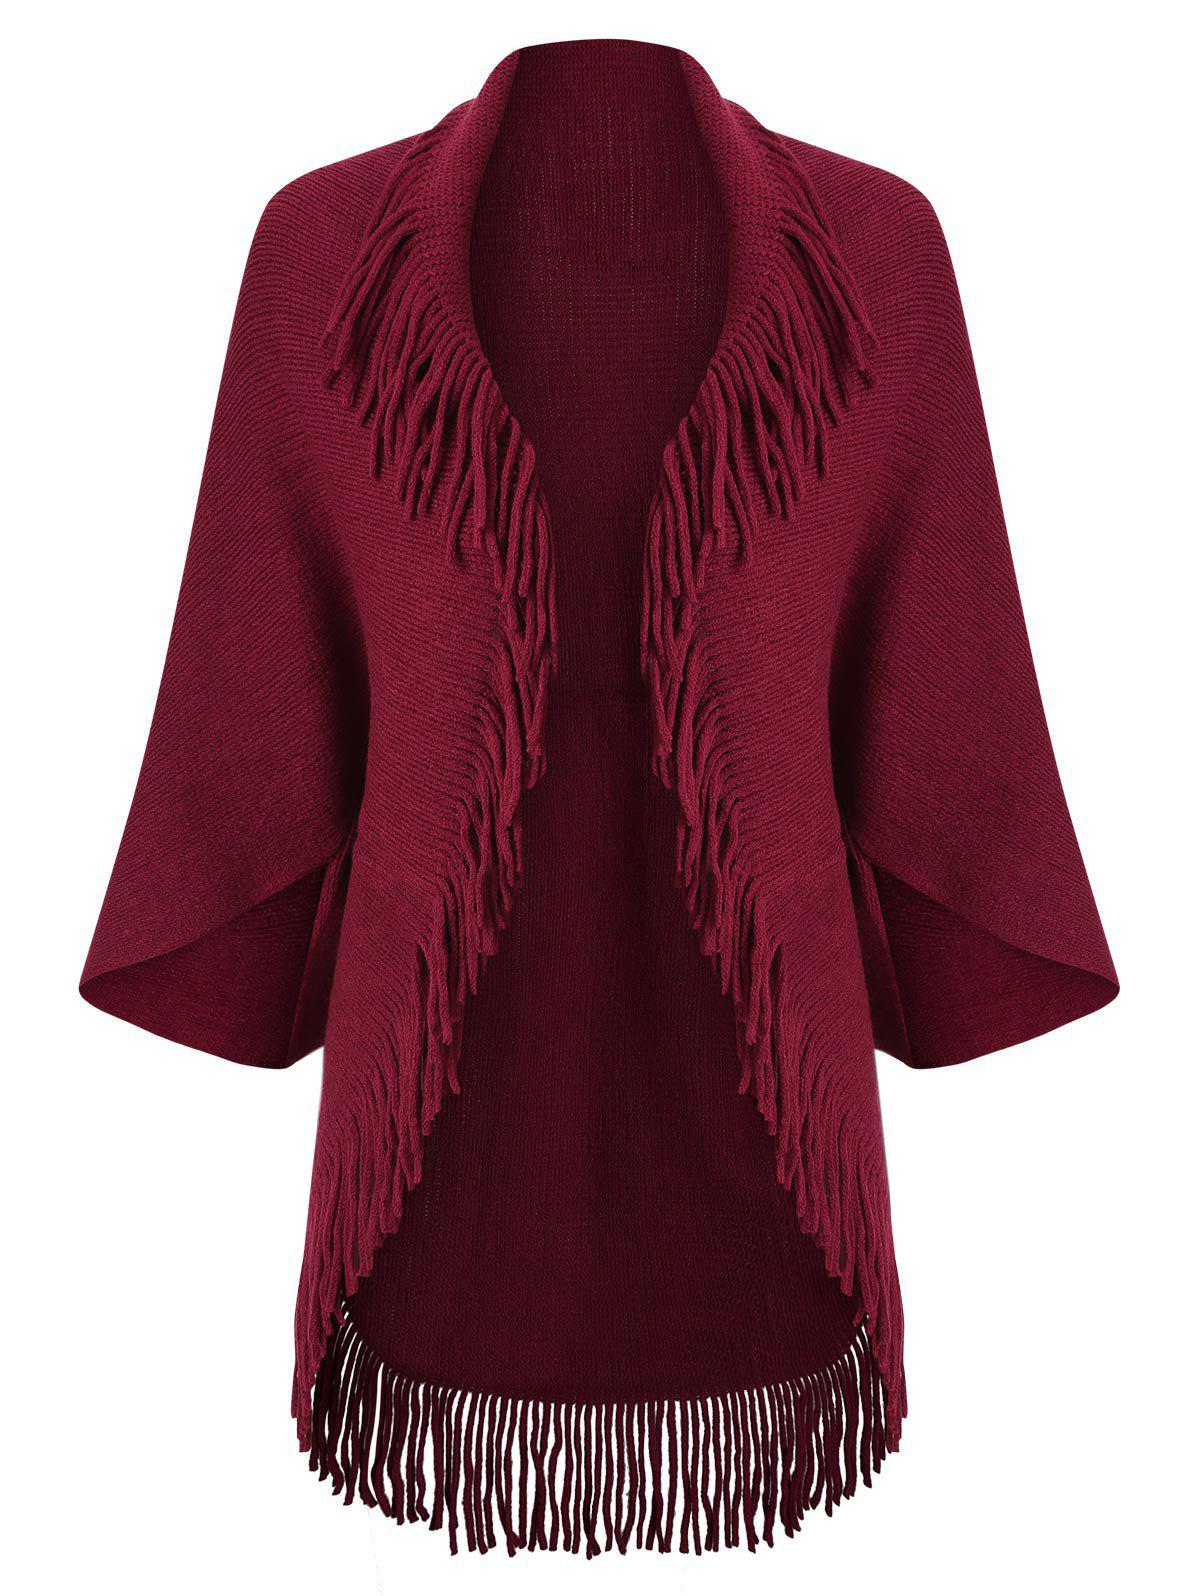 Fringed Trim Open Front Cape Cardigan - DEEP RED ONE SIZE